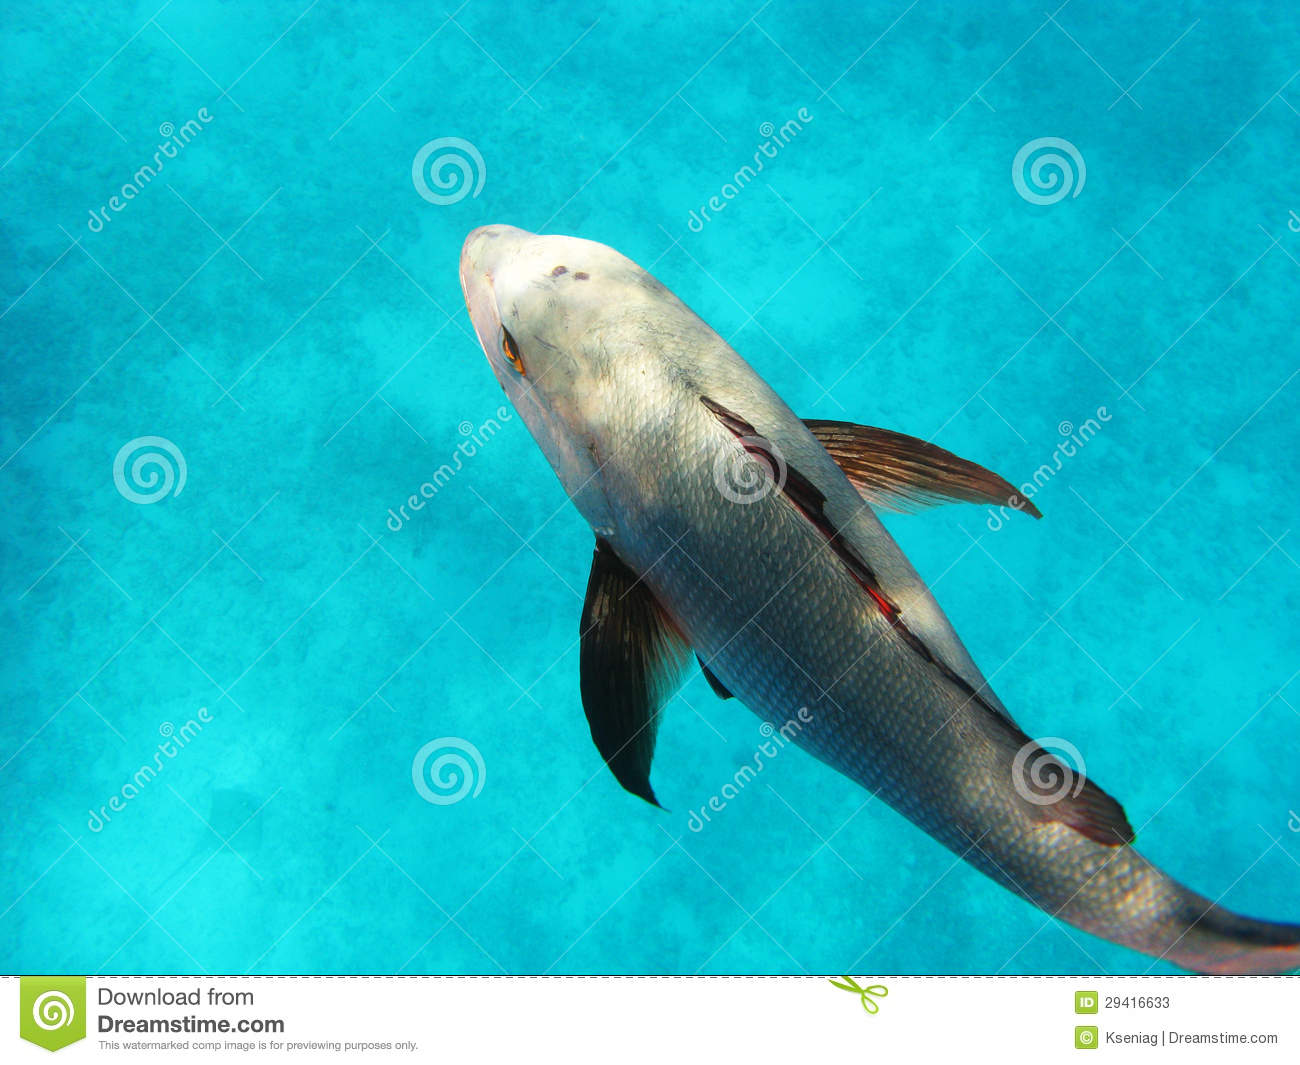 Great barrier reef big fish in the water stock image for Dream about fish out of water